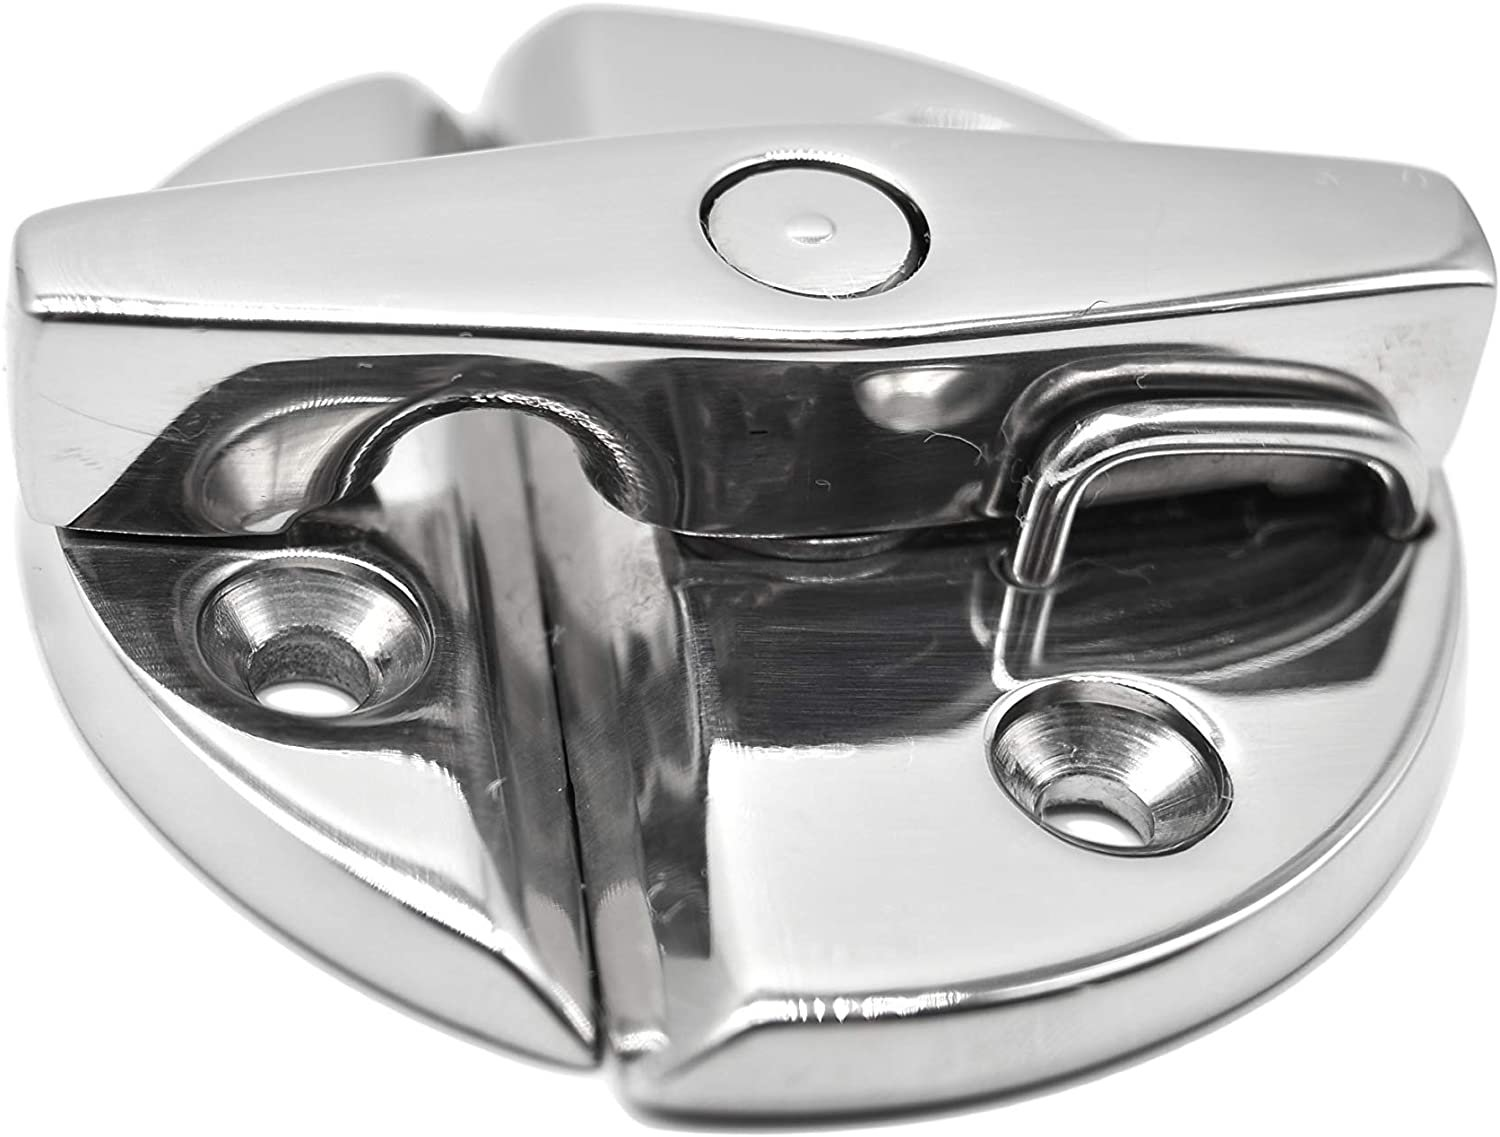 1pcs MARINE CITY 316 Stainless Steel Boat Deck Hatch Latch Door Catch with Twist Action